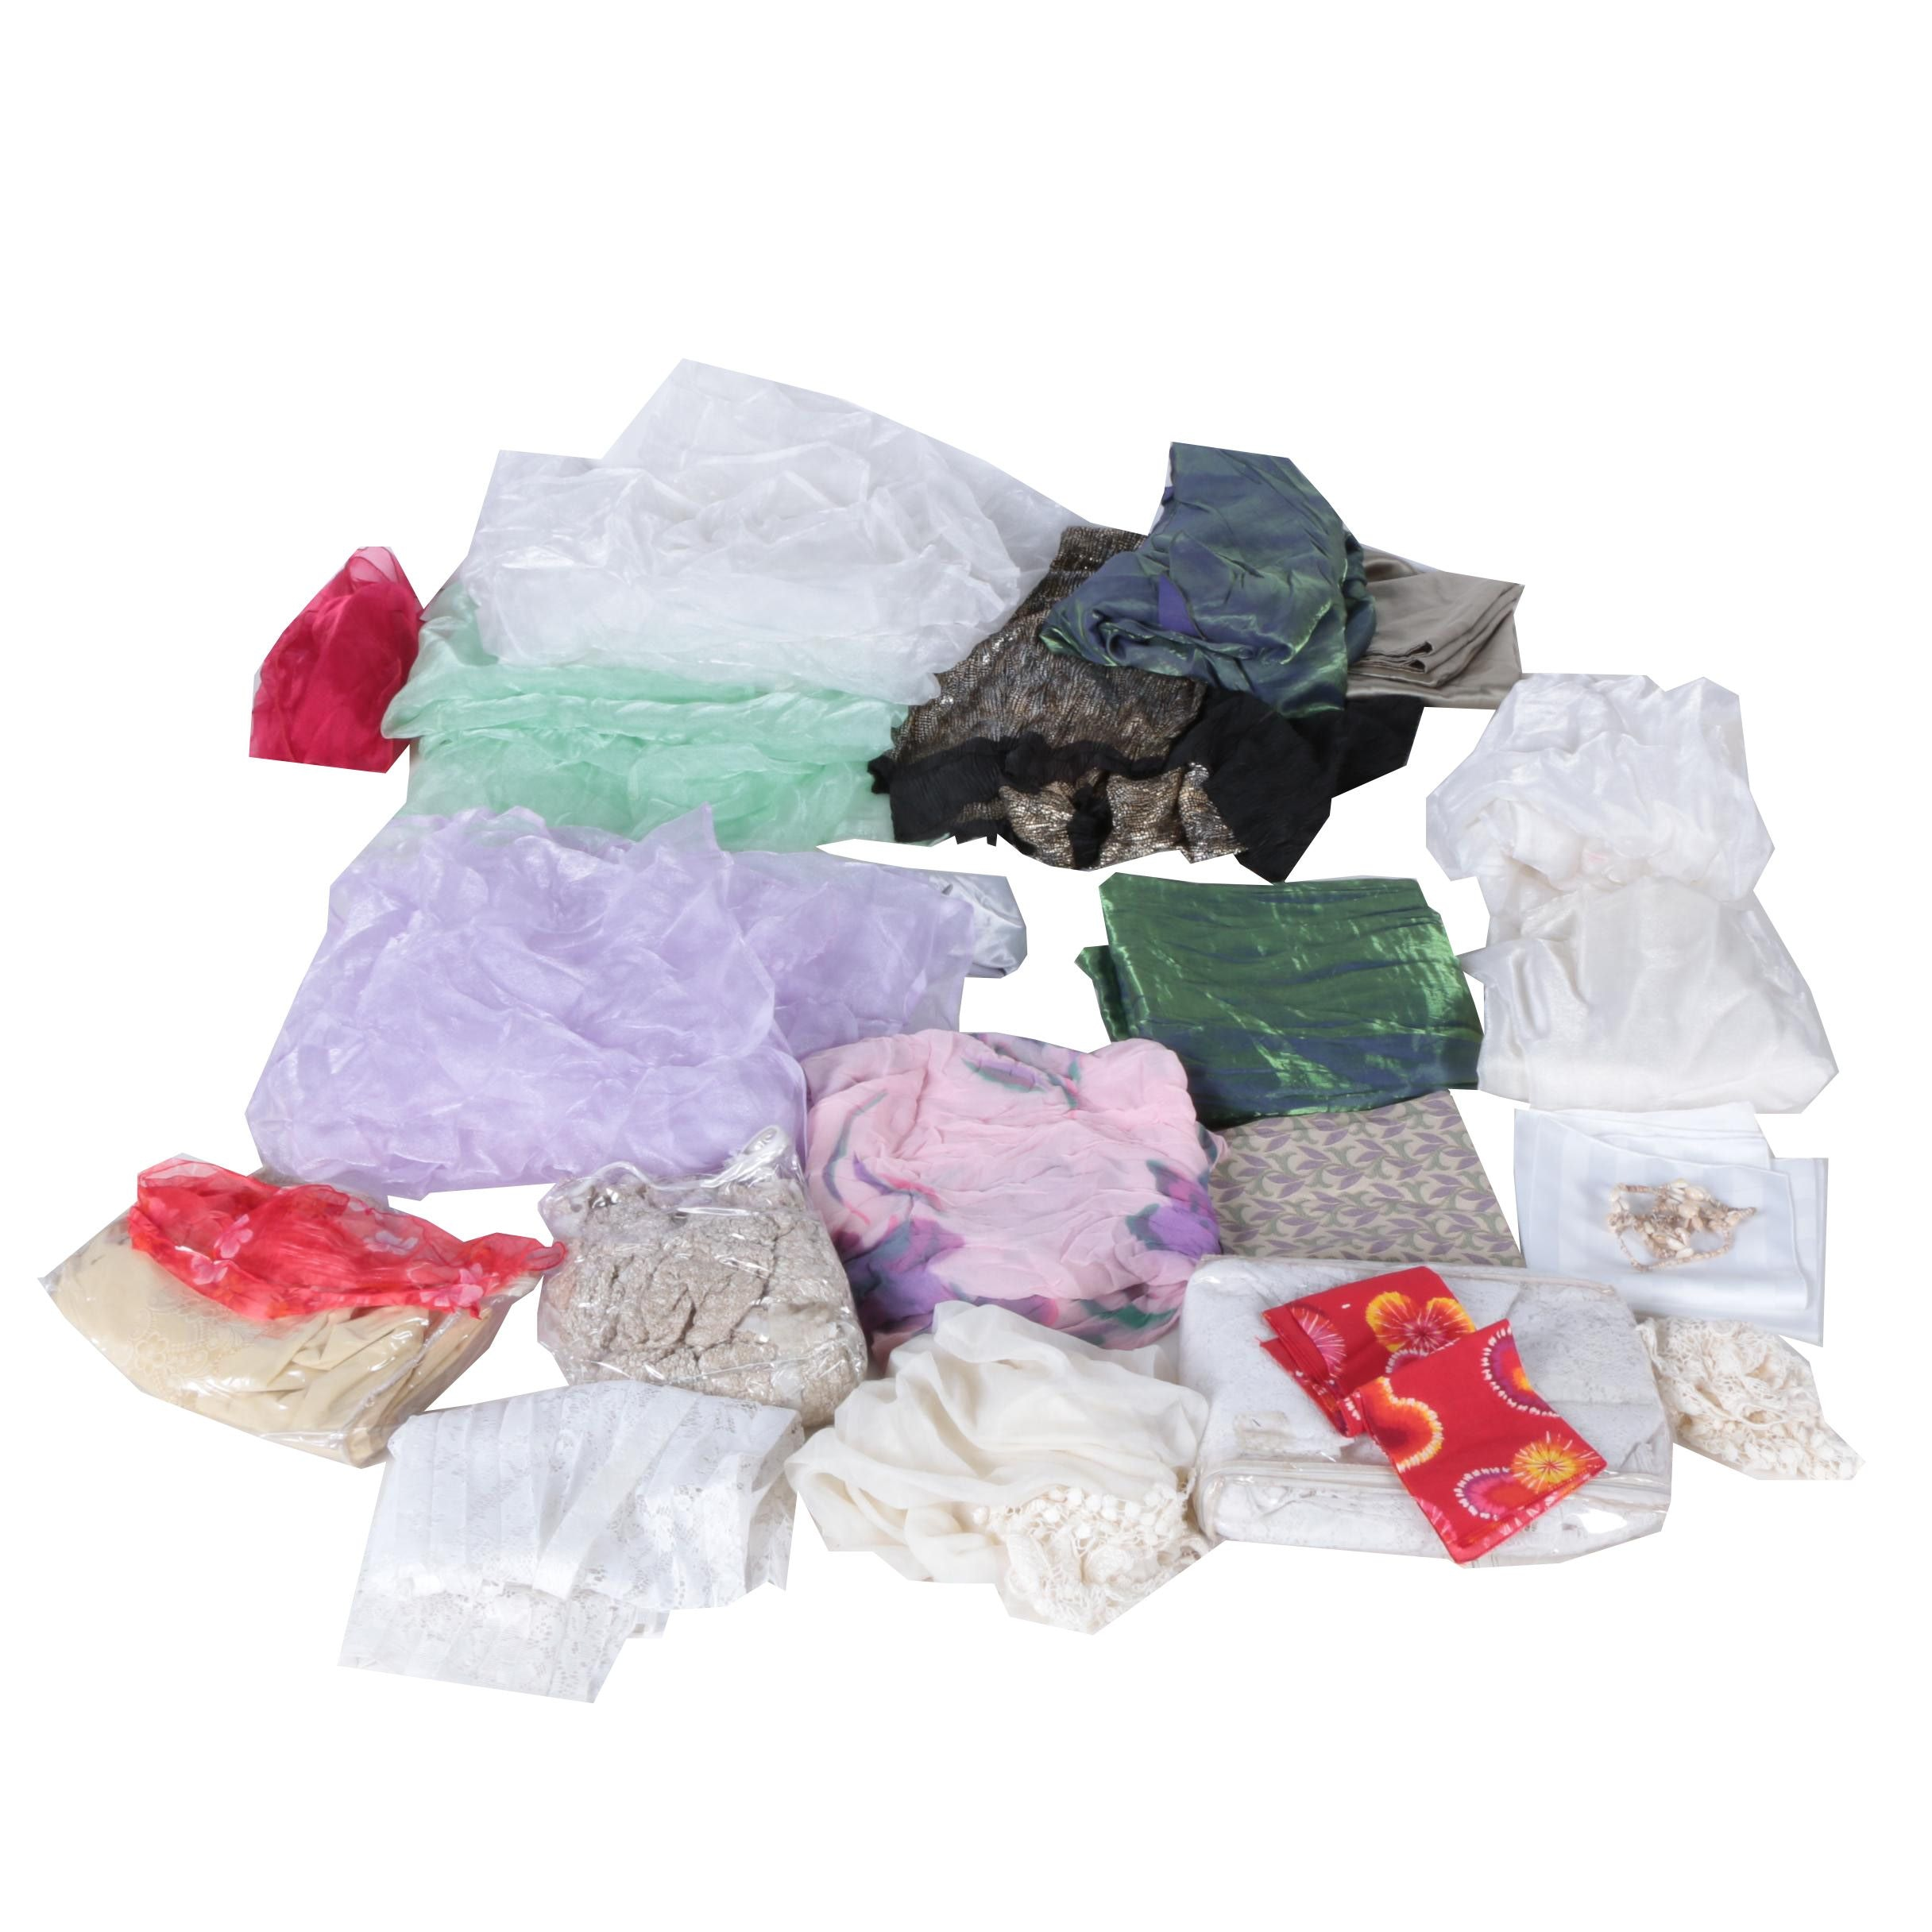 Assorted Colorful Silk, Cotton and Blended Fabric Linens